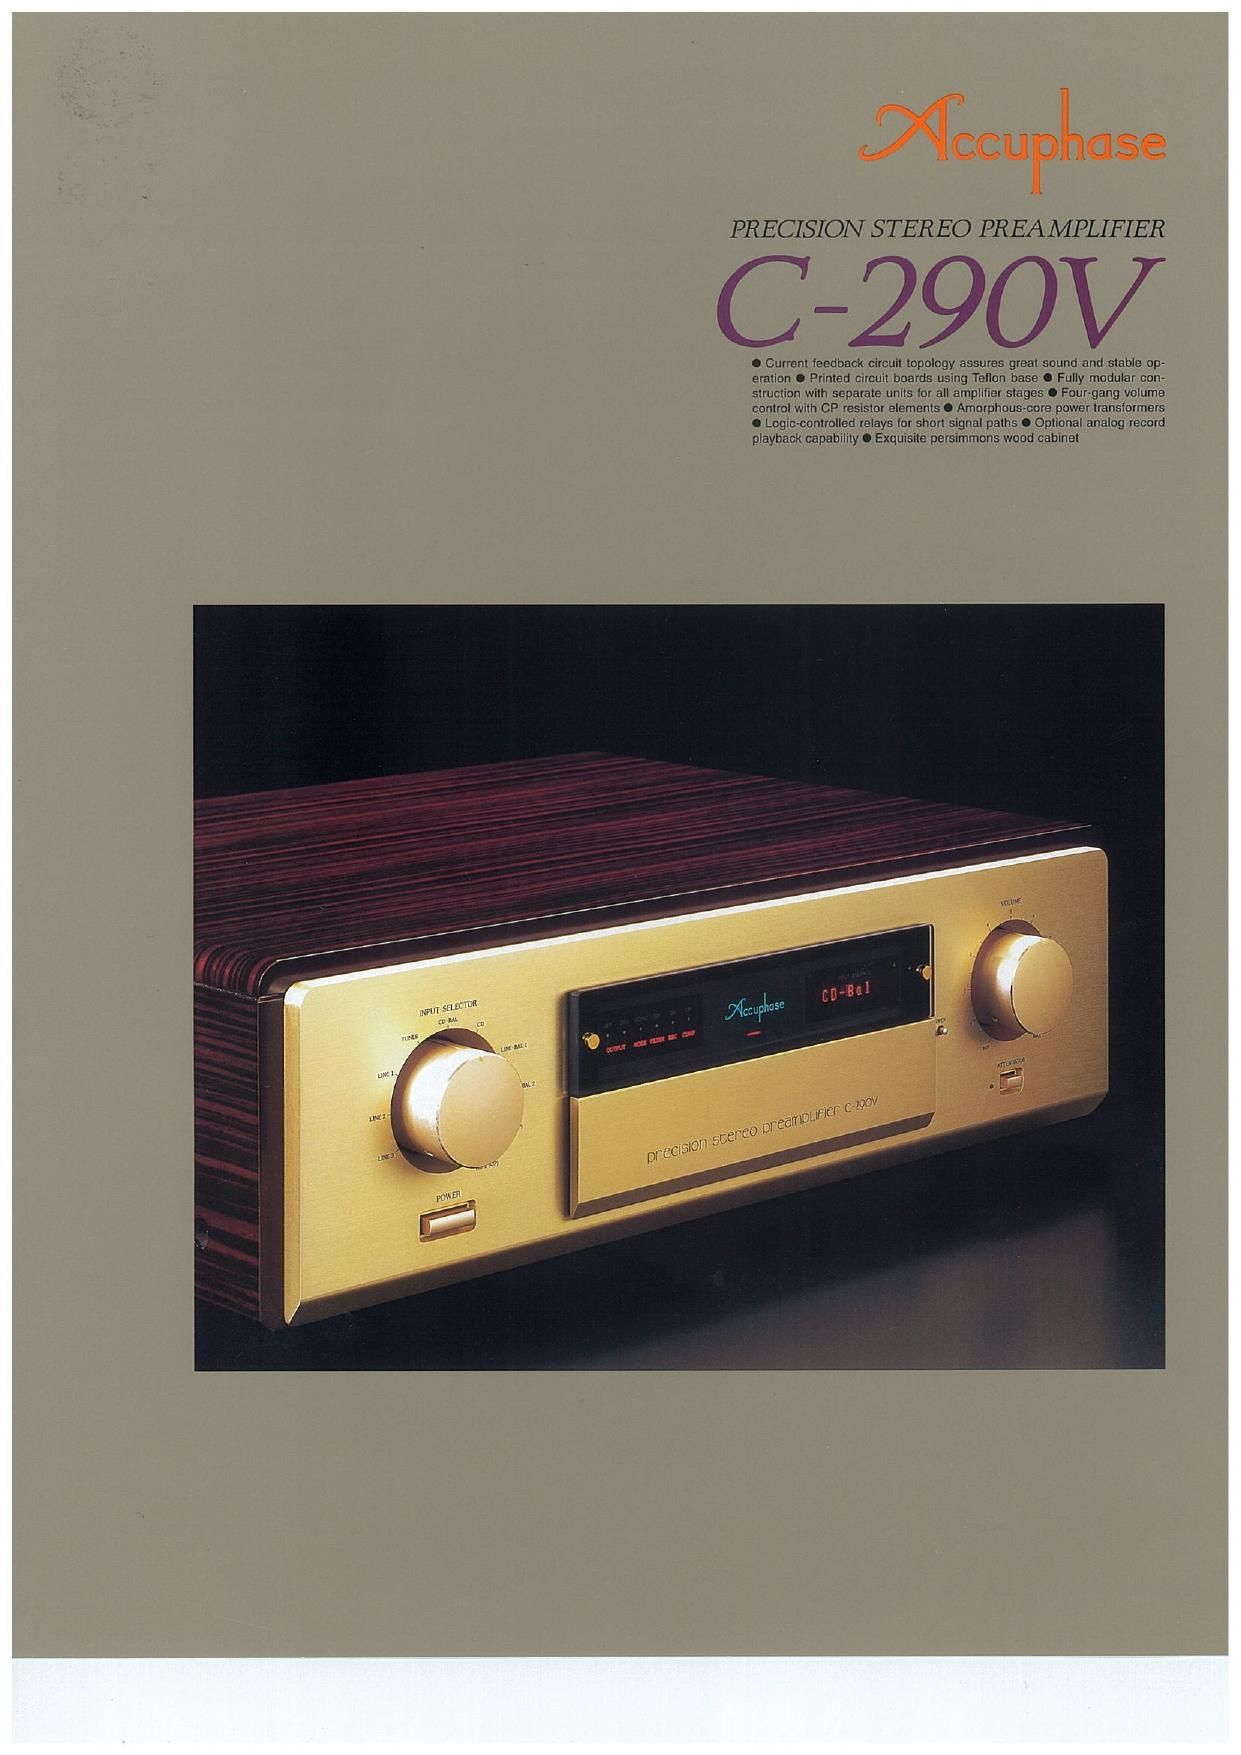 Accuphase C 290 V Brochure